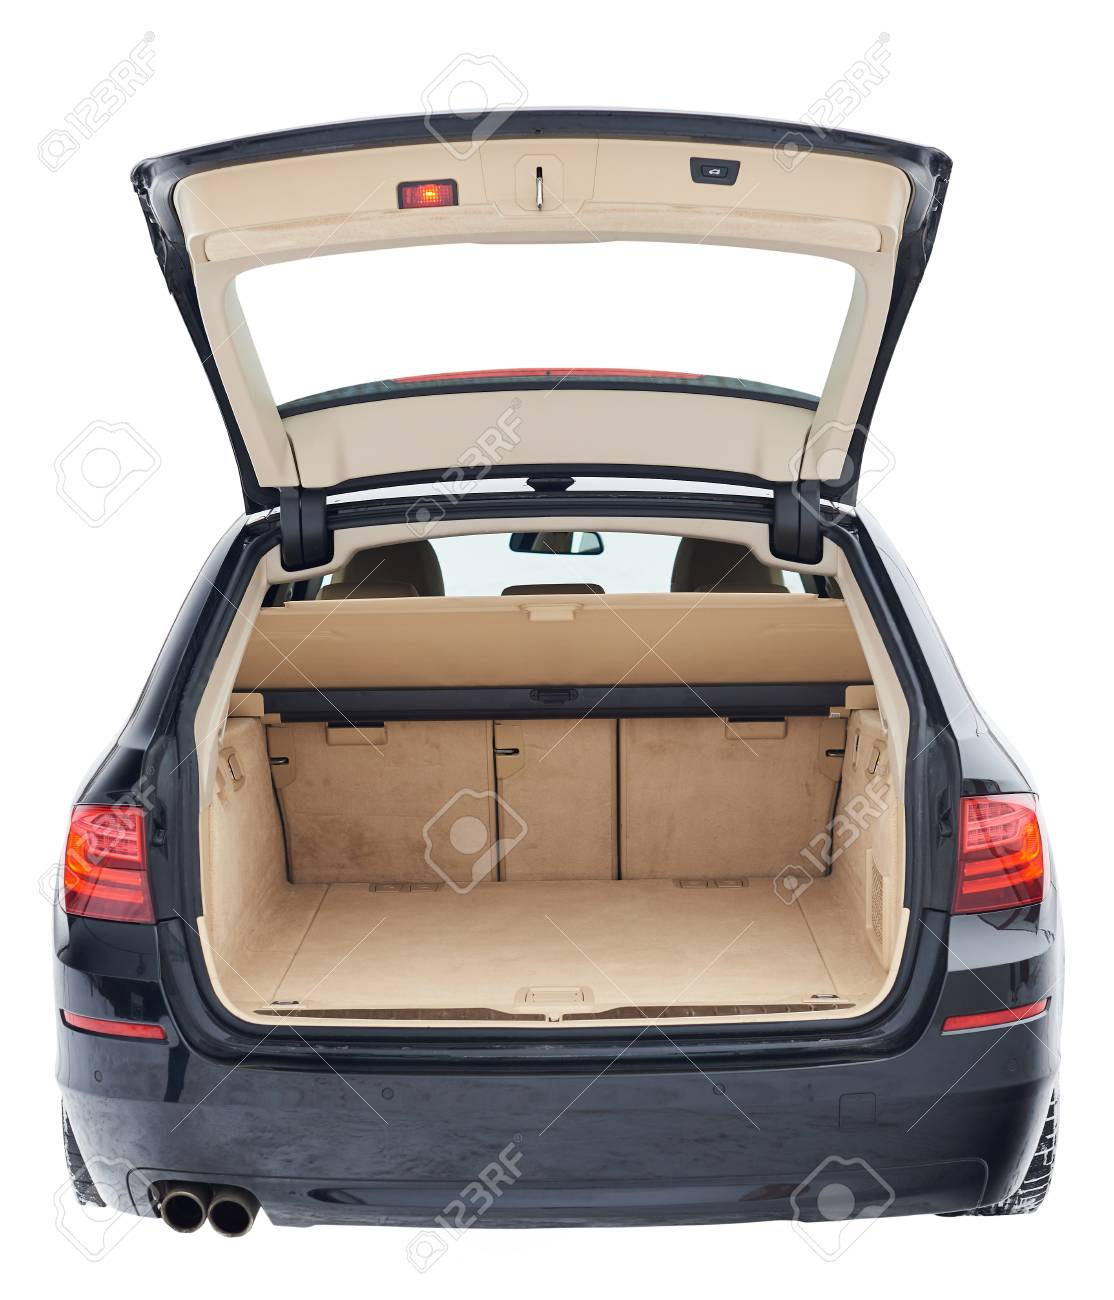 Car with trunk open